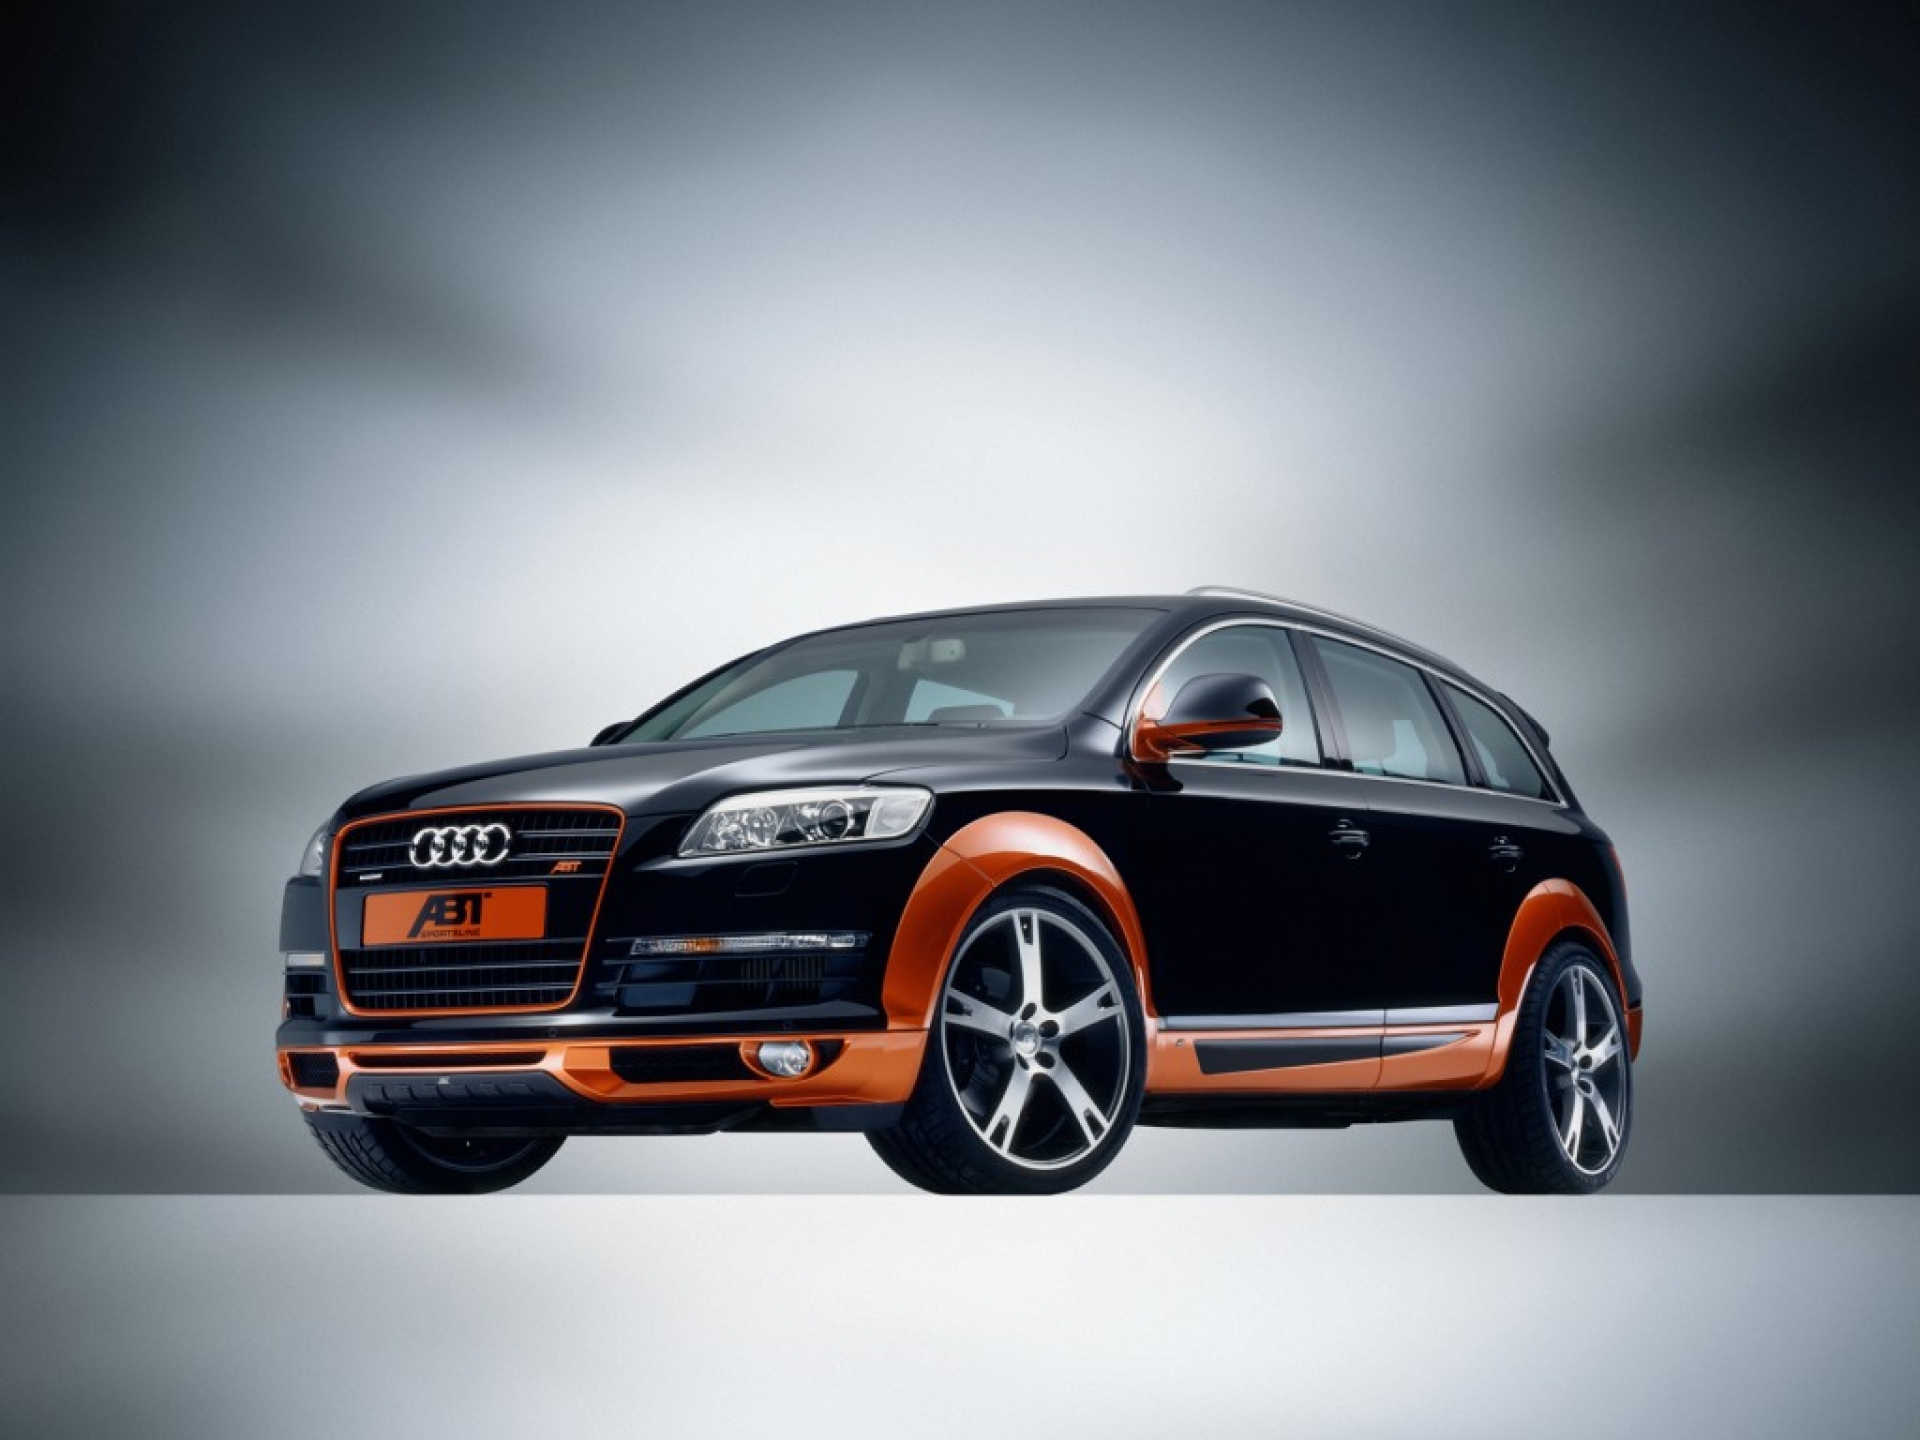 Audi Q7 1080p 1080p Wallpaper Ps3 Wallpaper